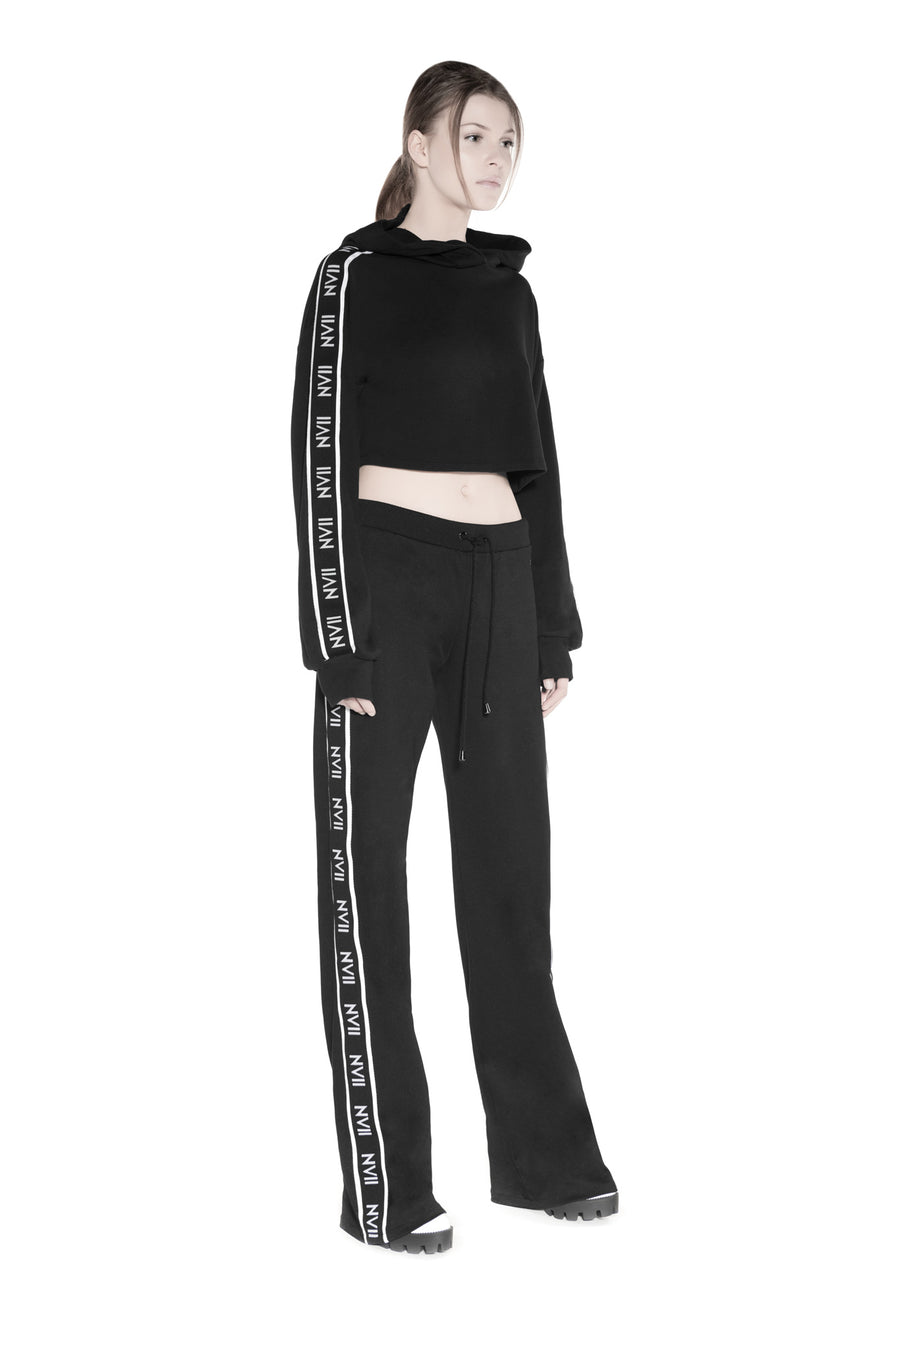 NOMAD VII - CHIGAN TRACK SUIT HOODED CROP TOP - NOMAD VII X ANNE BOWEN